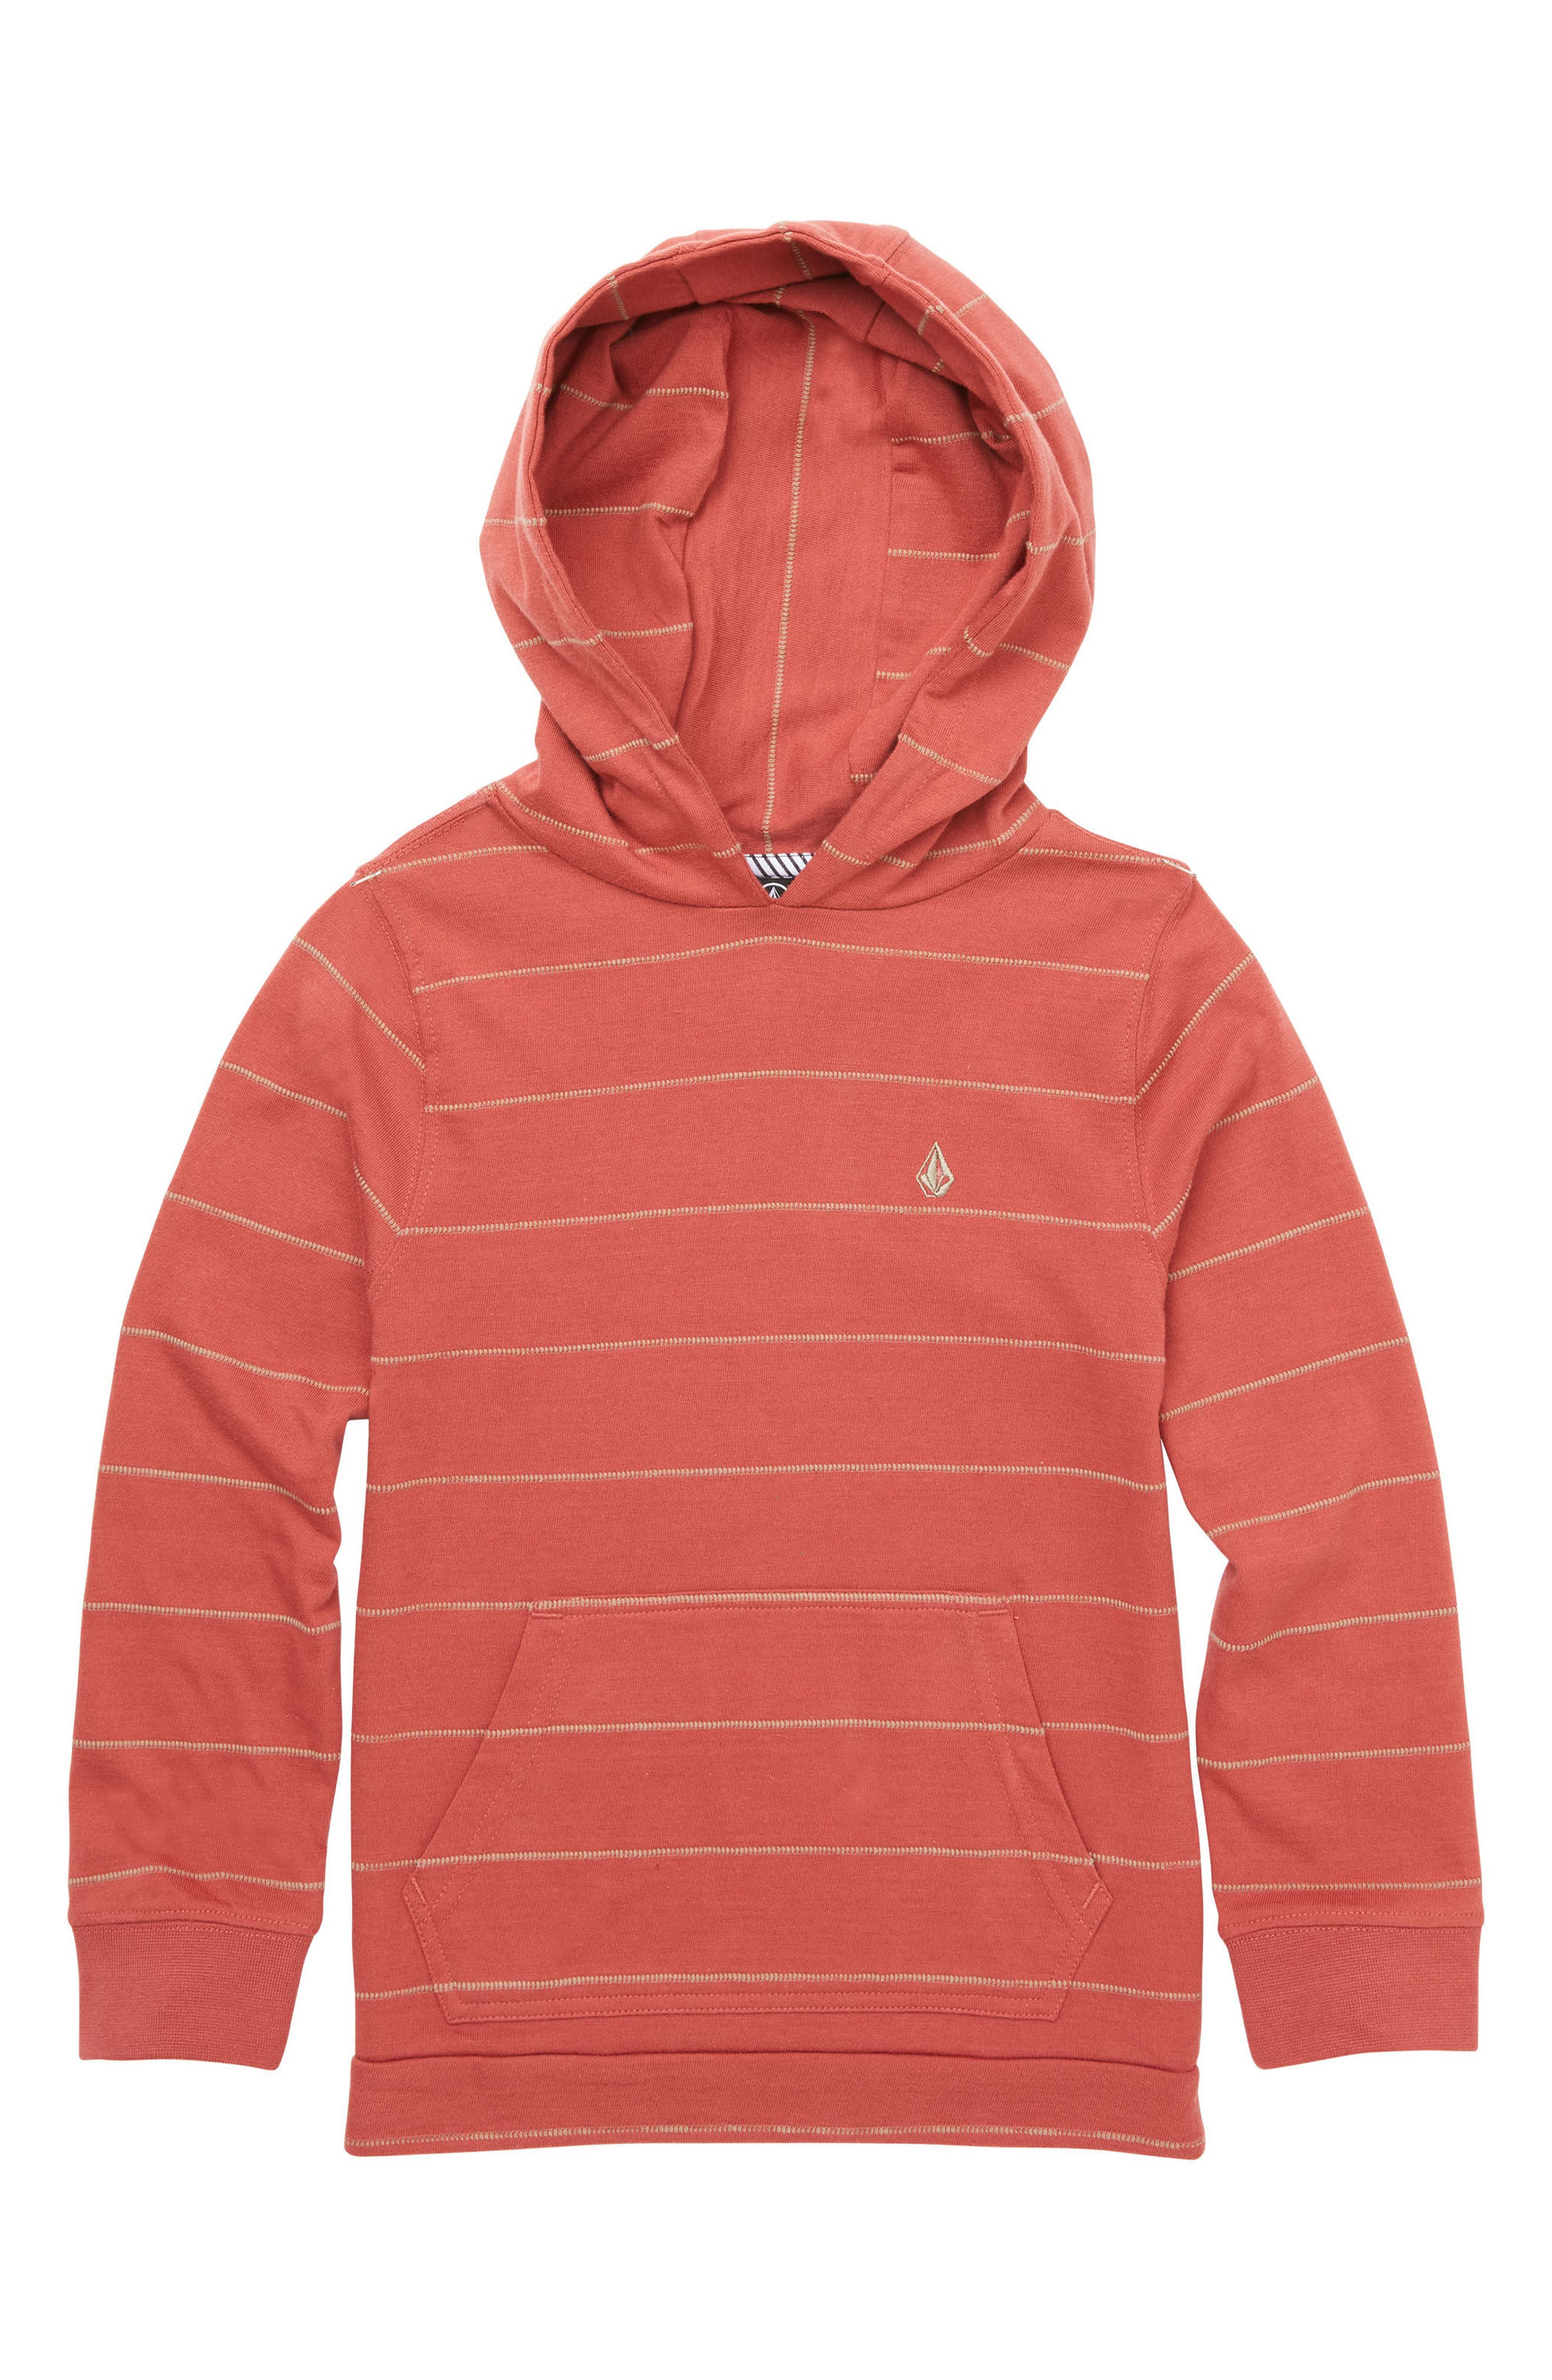 Wallace Knit Hoodie,                             Main thumbnail 1, color,                             Dead Rose